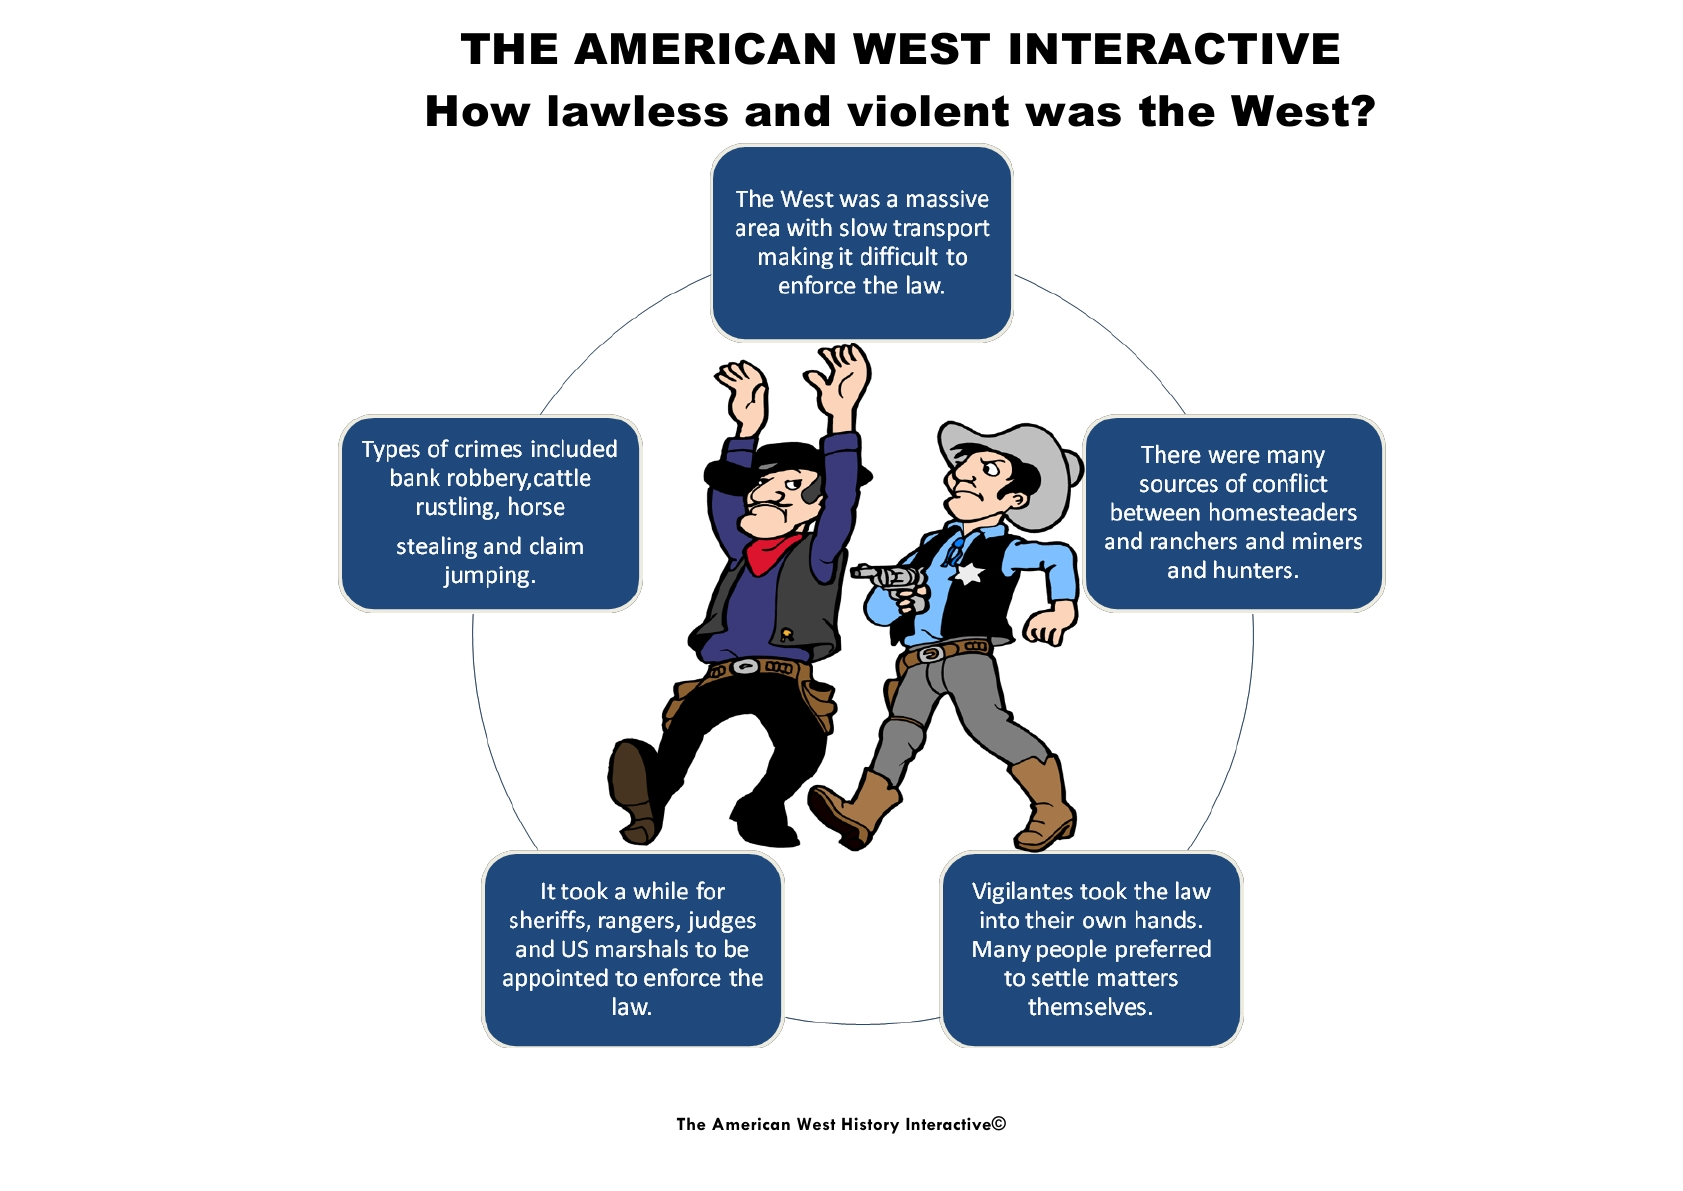 law and order in the american west essay While law and order was he has written dozens of articles and essays  he wants to help reveal a more complex and more accurate picture of the american west.